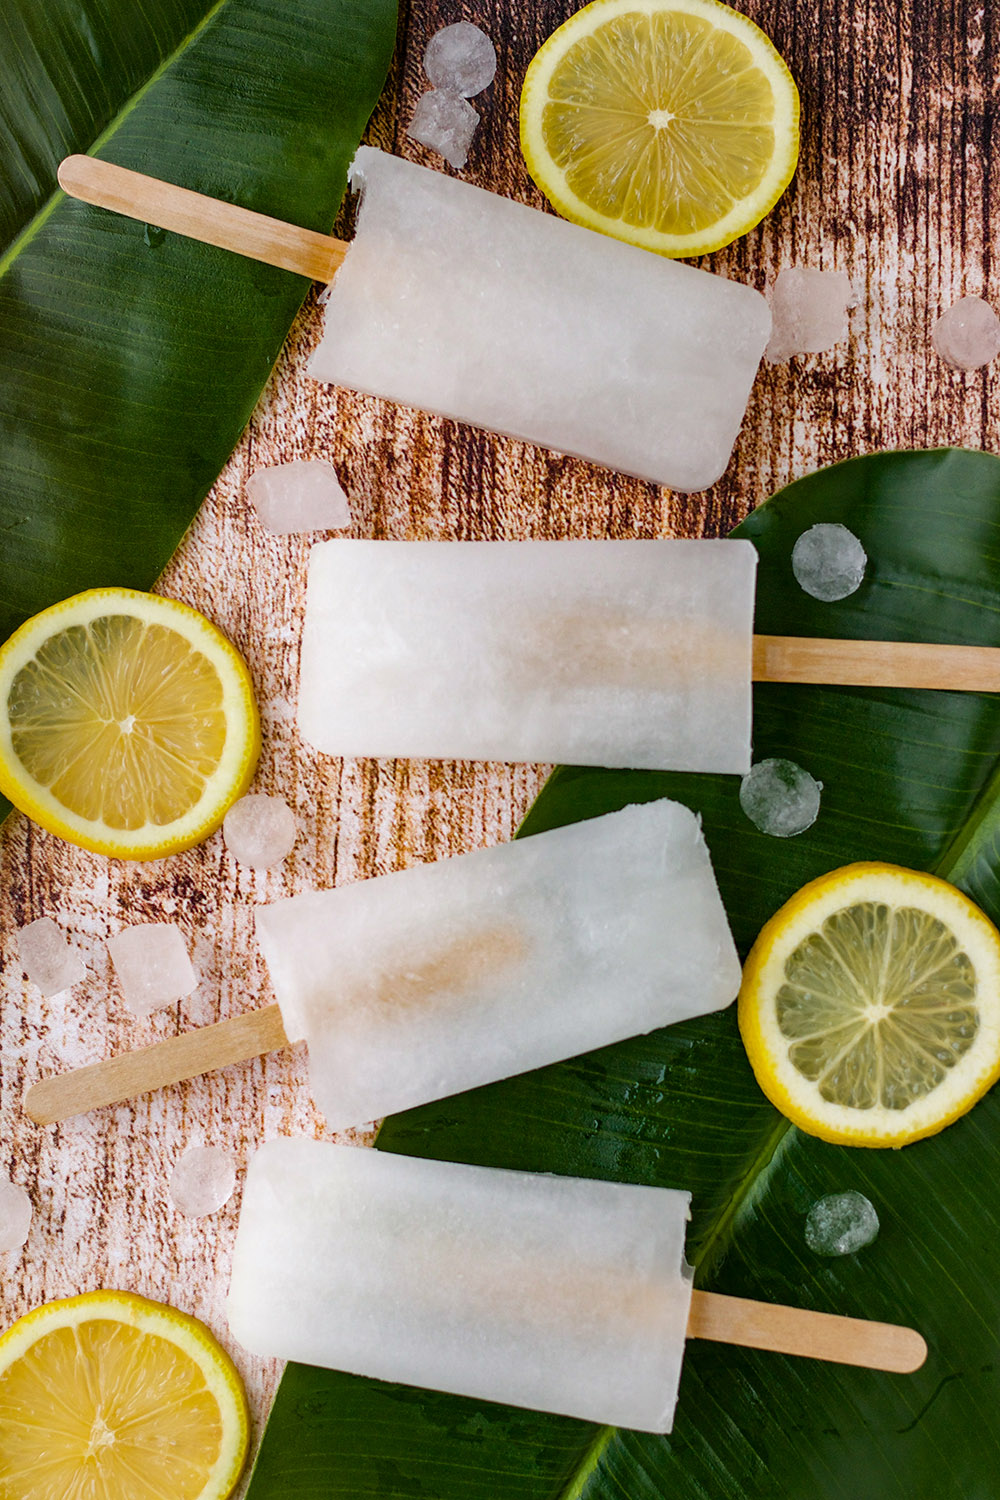 Four ice pops on a table with ice cubes, leaves, and lemon slices.